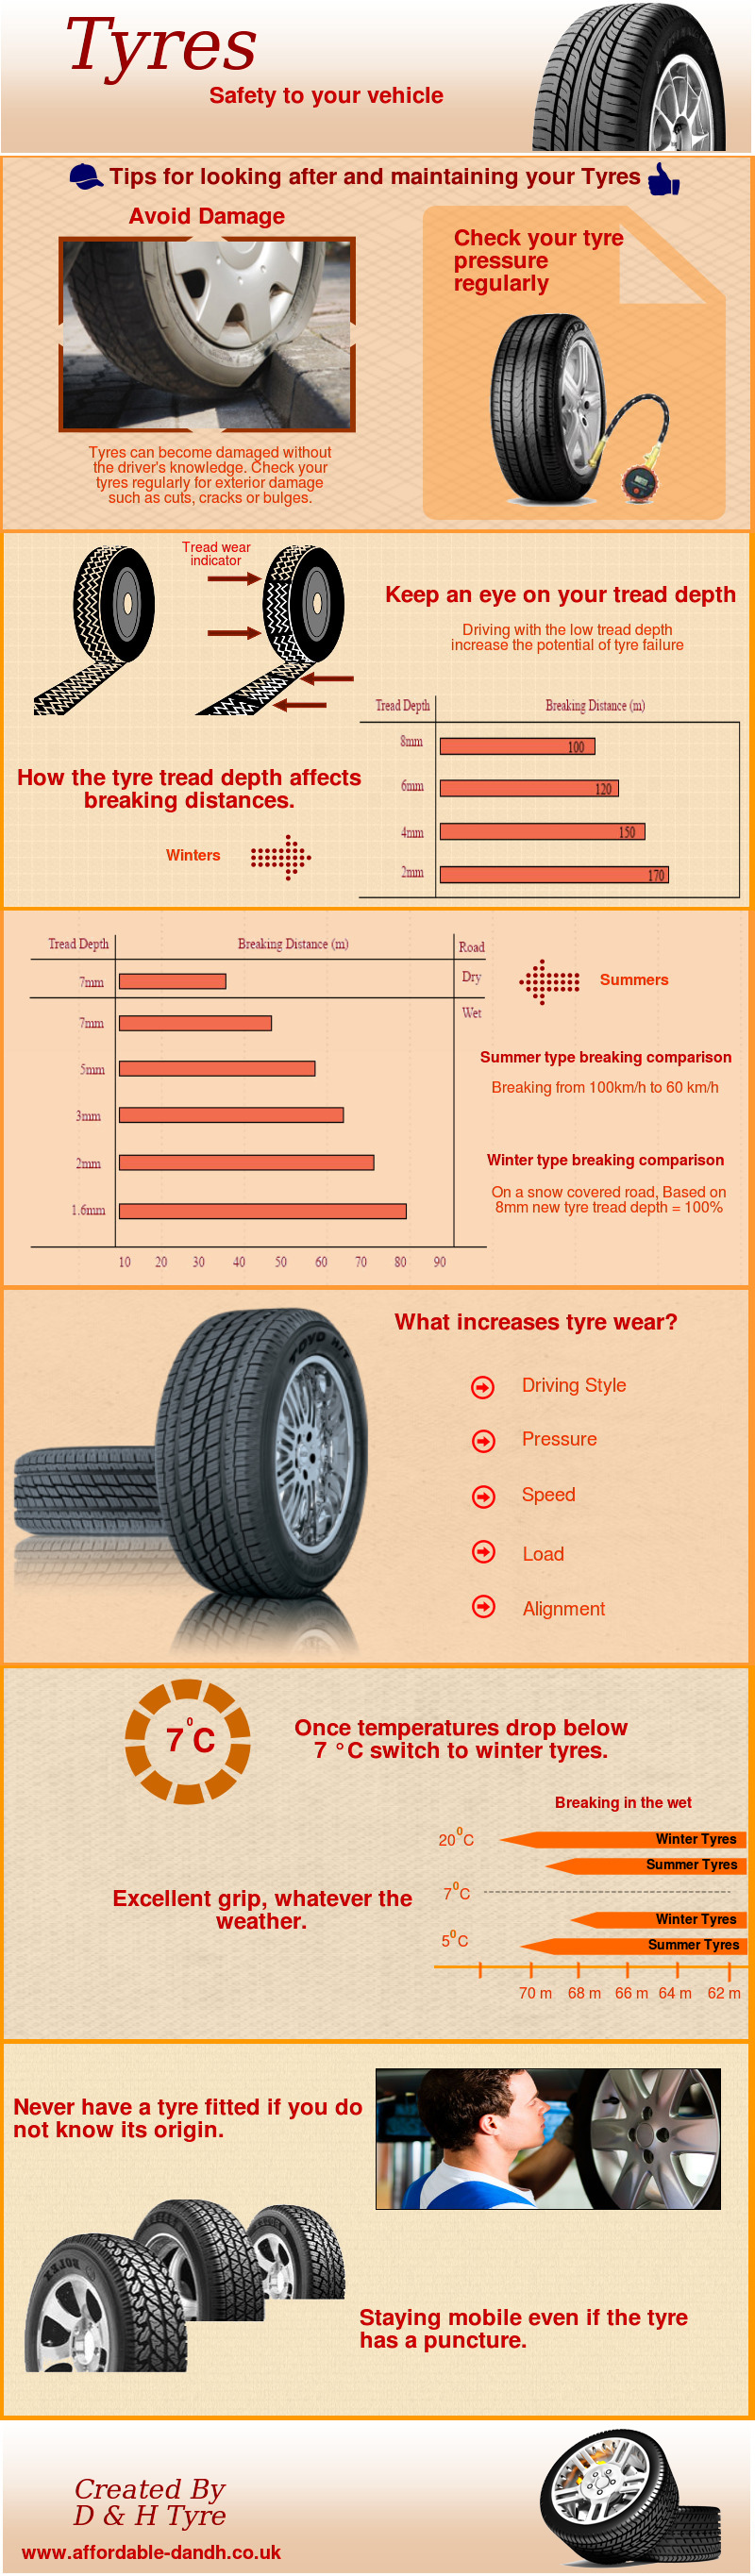 Tyres Safety To Your Vehicle